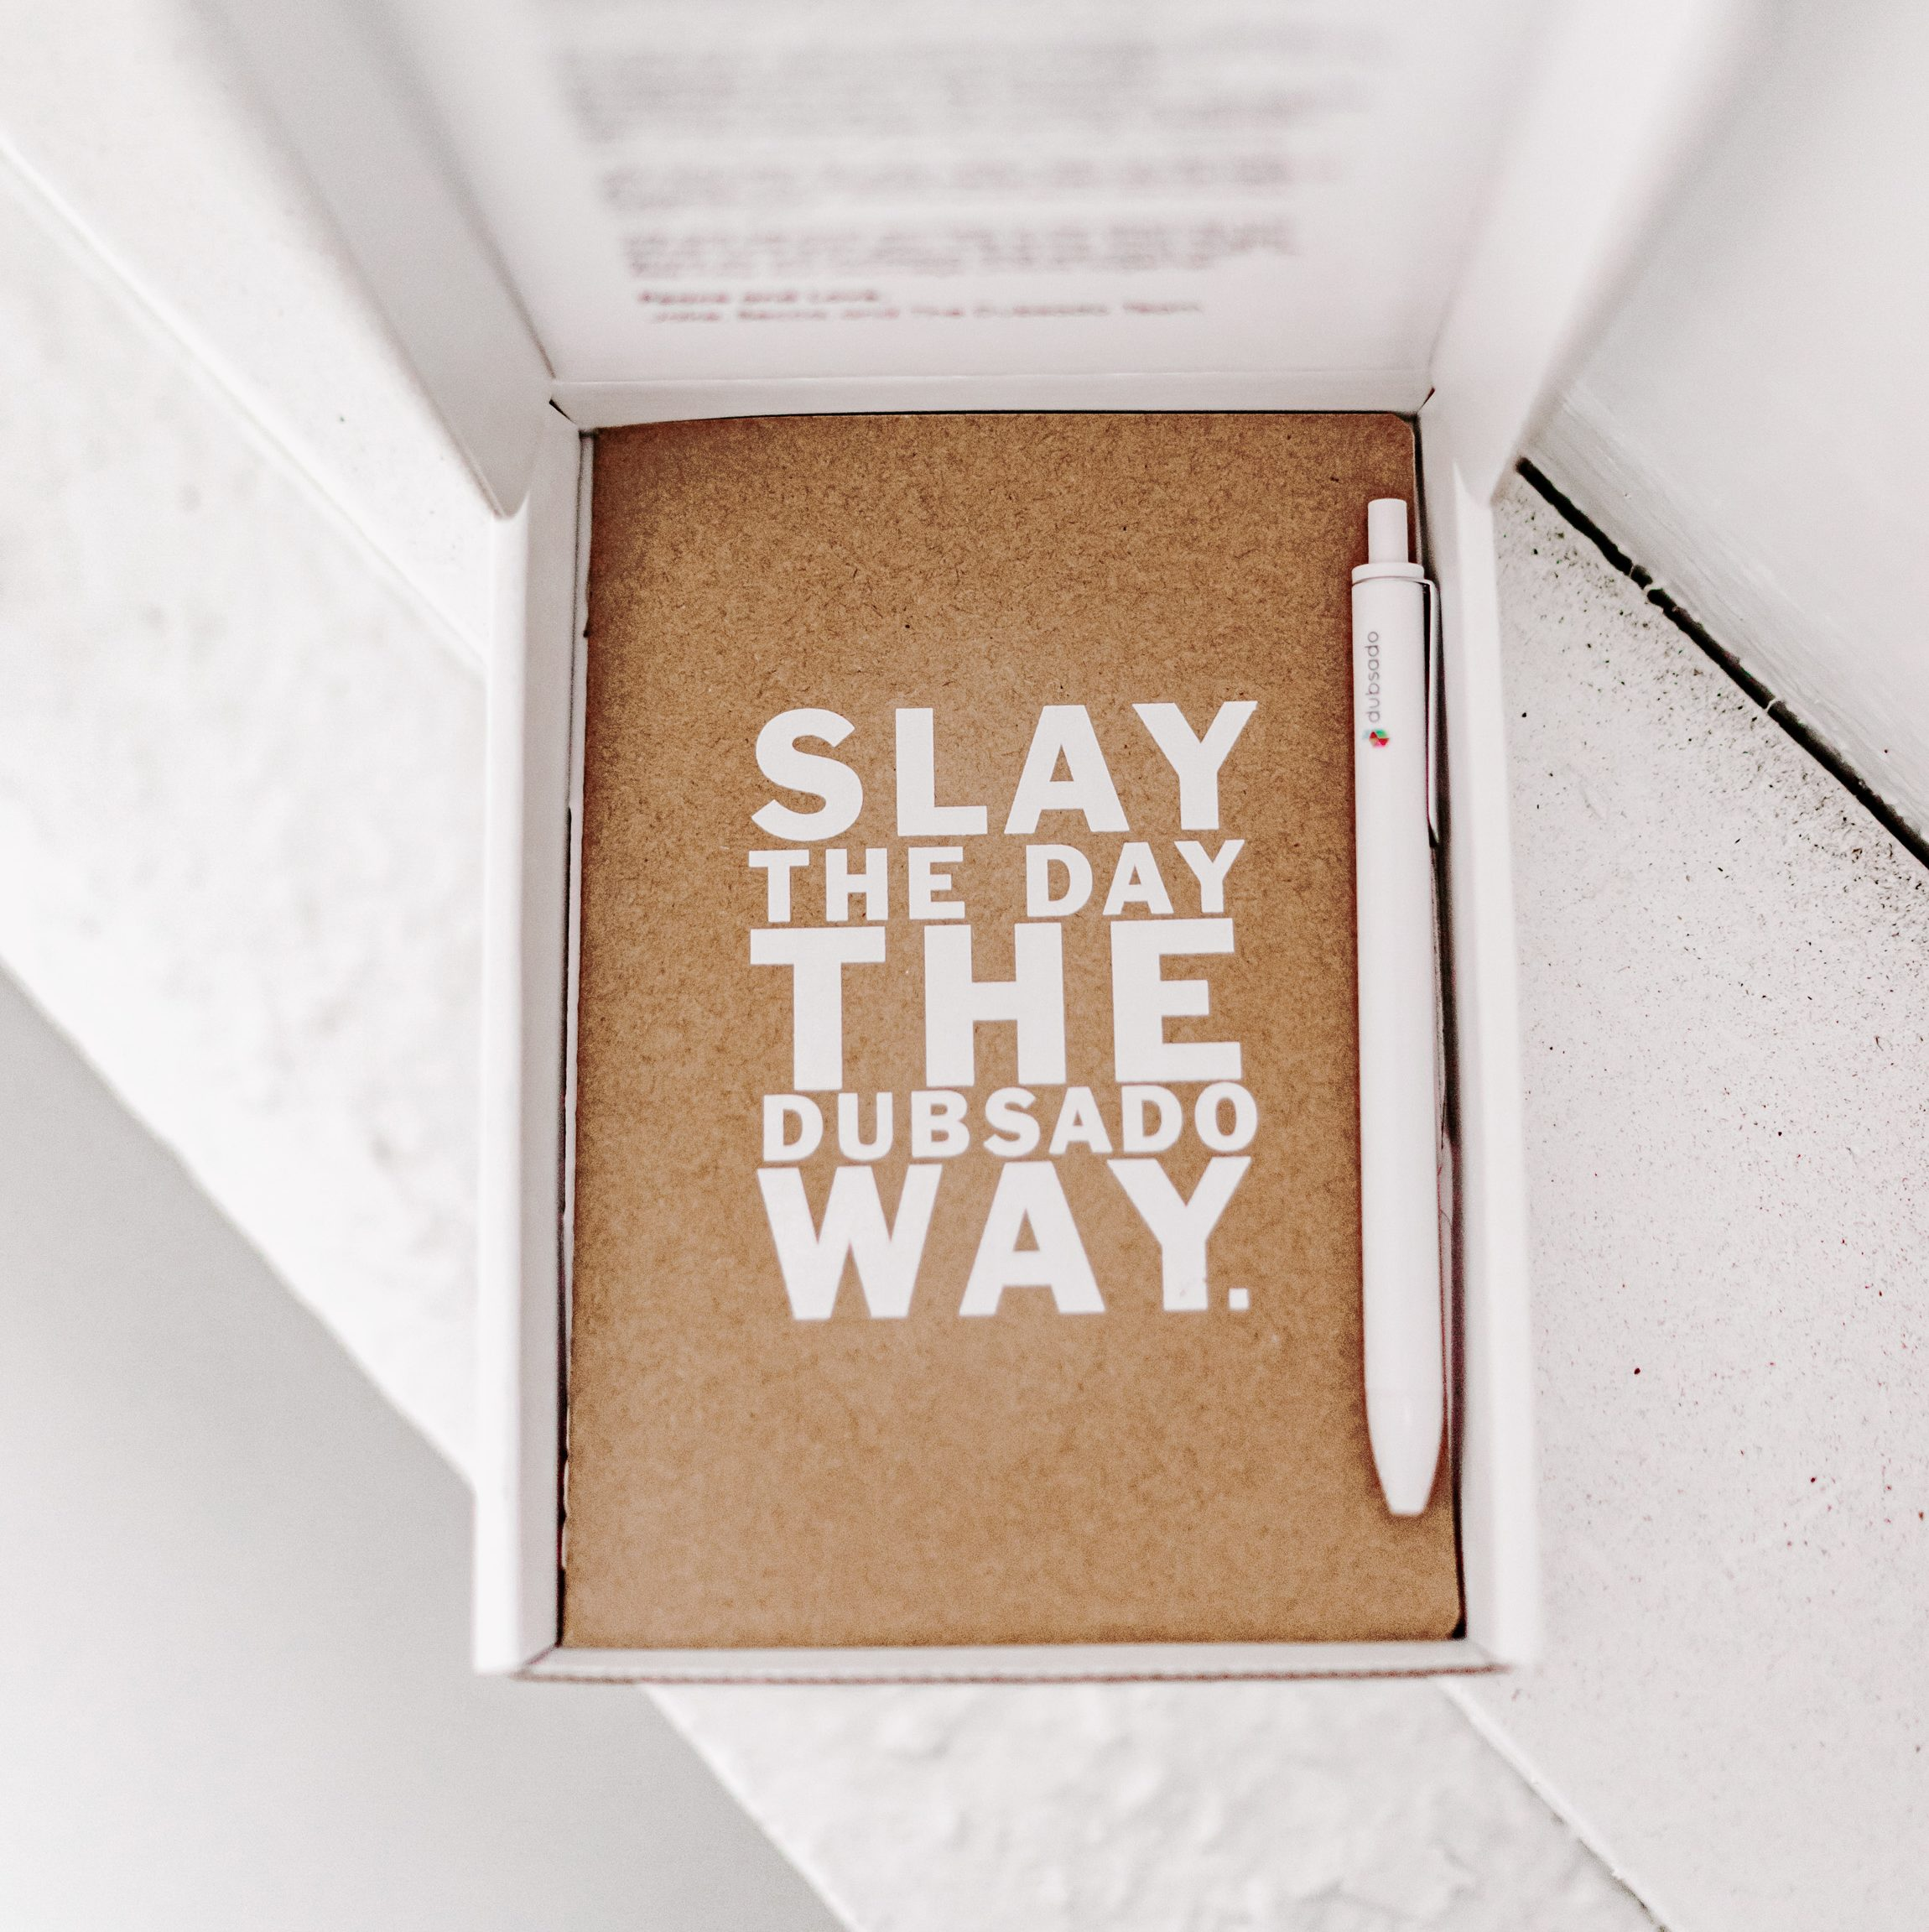 """Open white box with a dubsado branded pen and a notebooks that says """"Slay the day the Dubsado way"""" inside."""